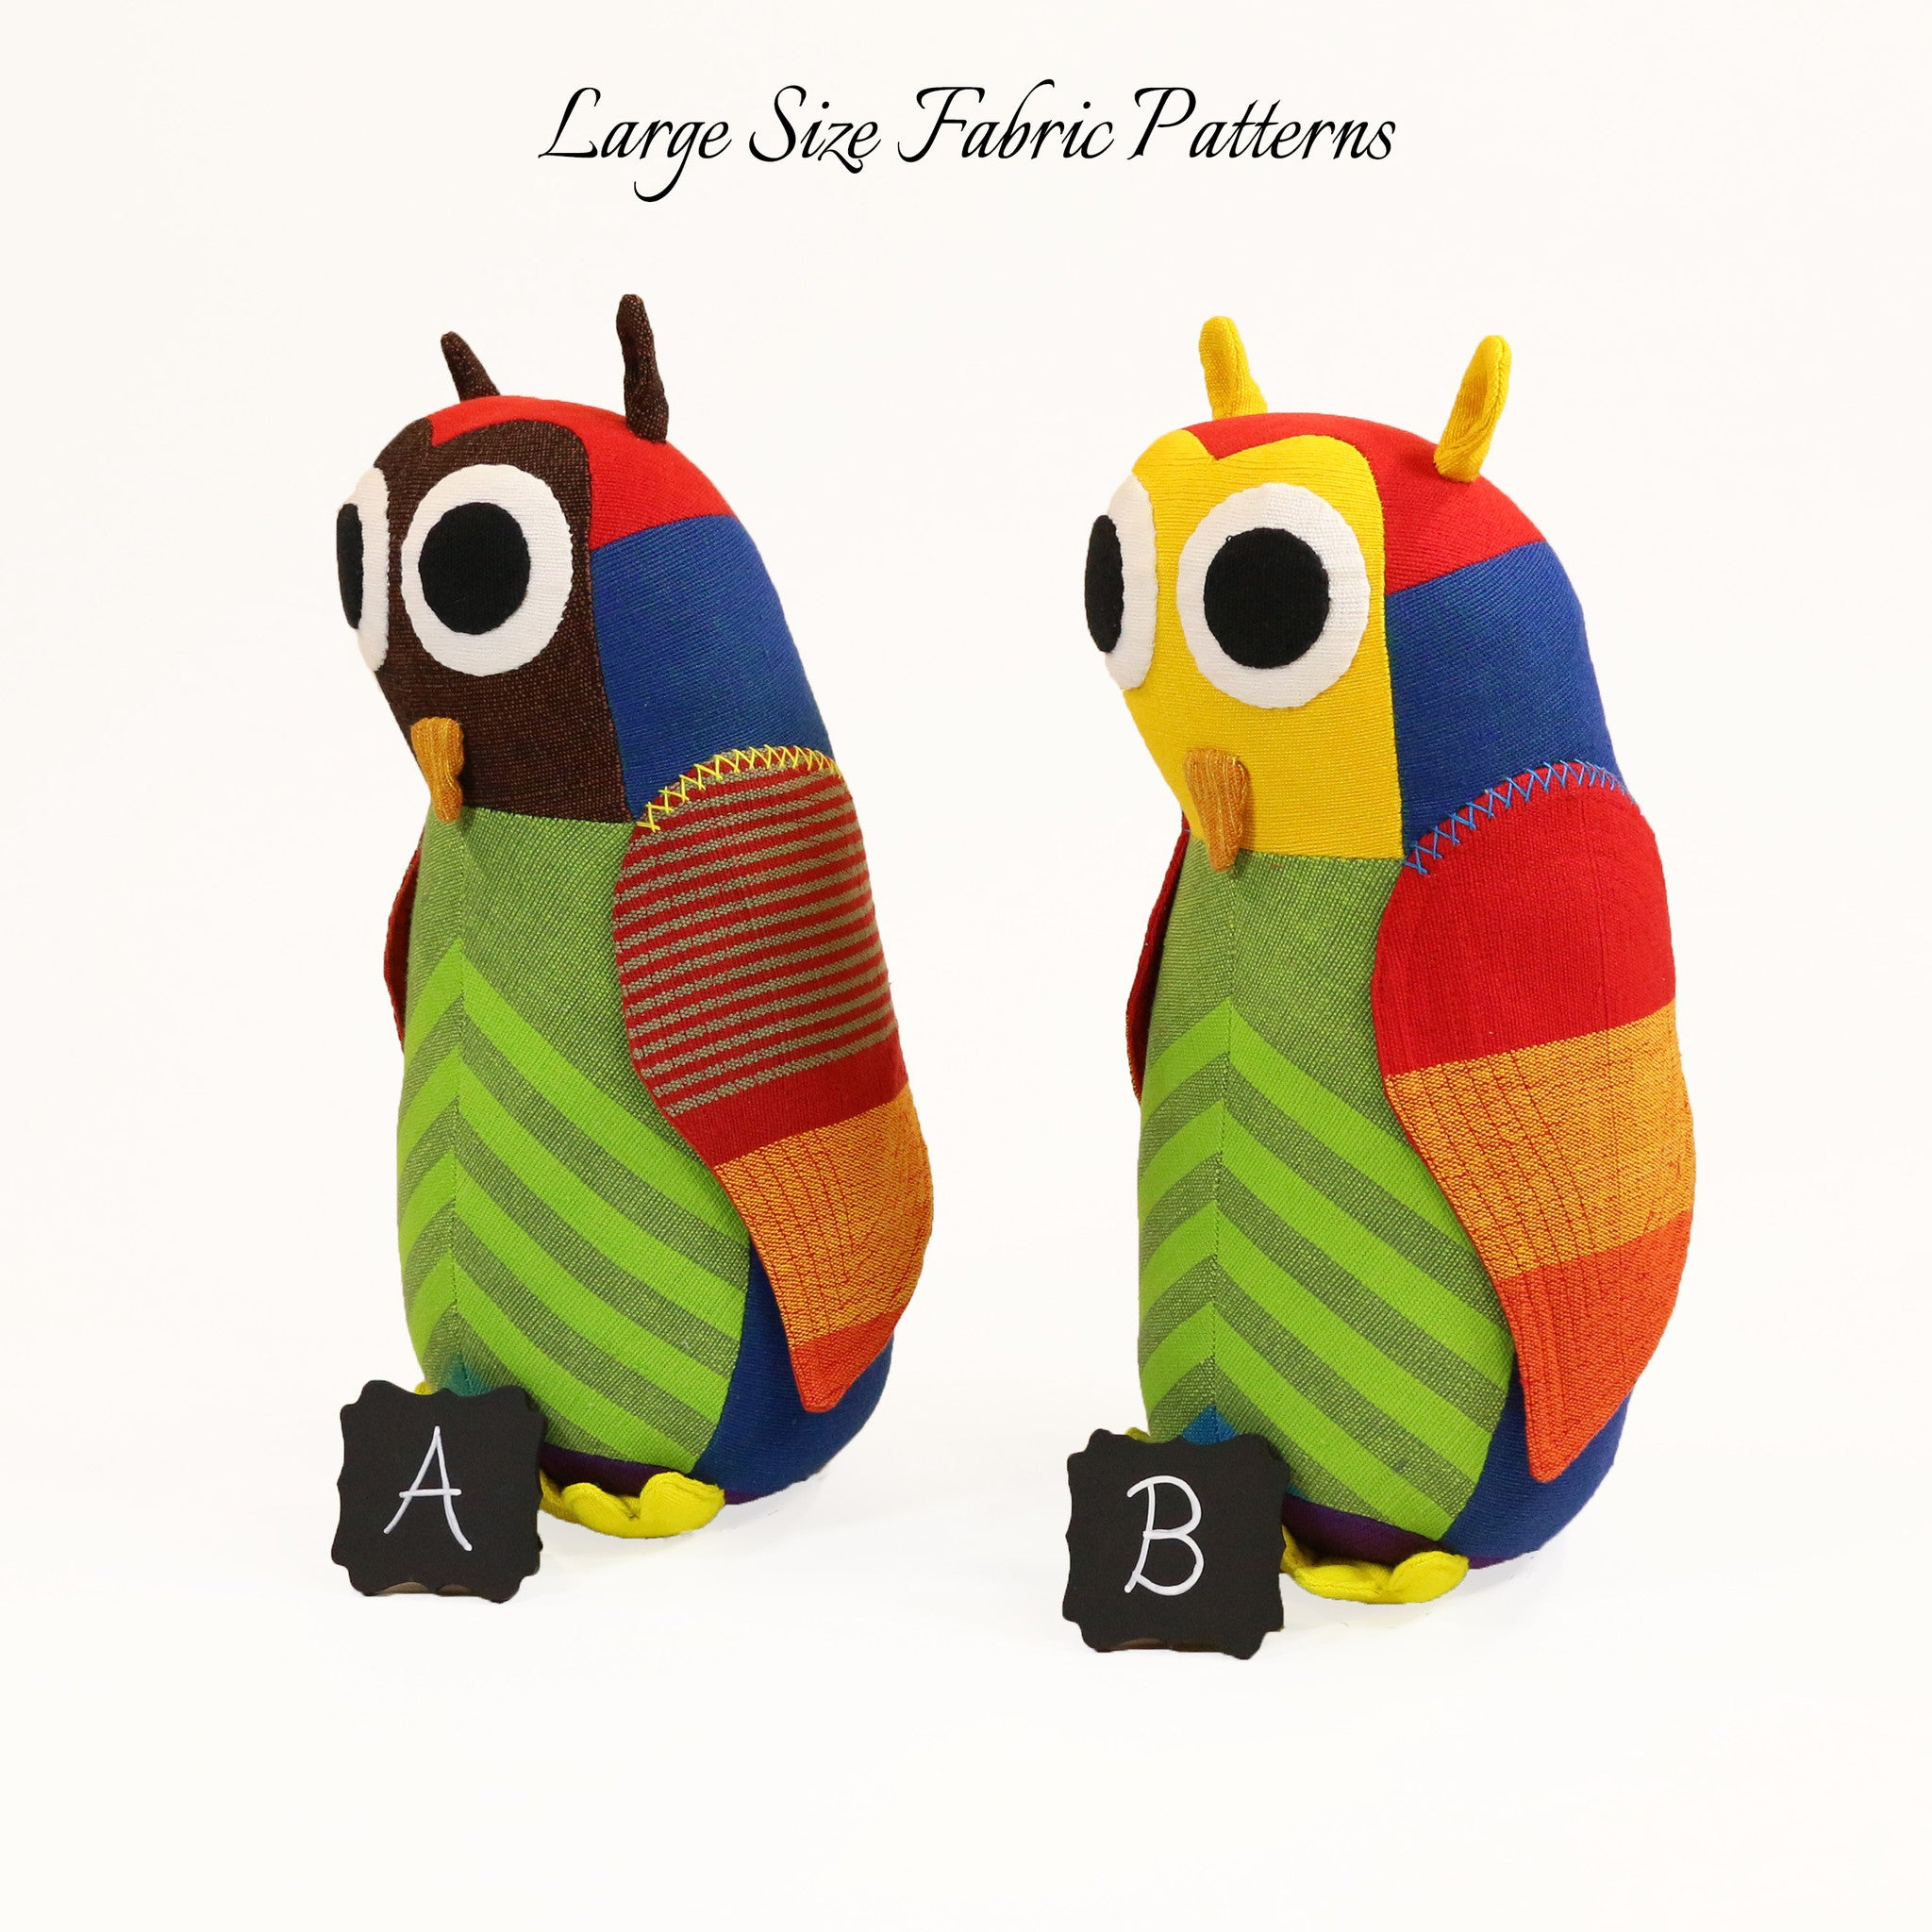 Hunter, the Owl – large size fabric patterns shown